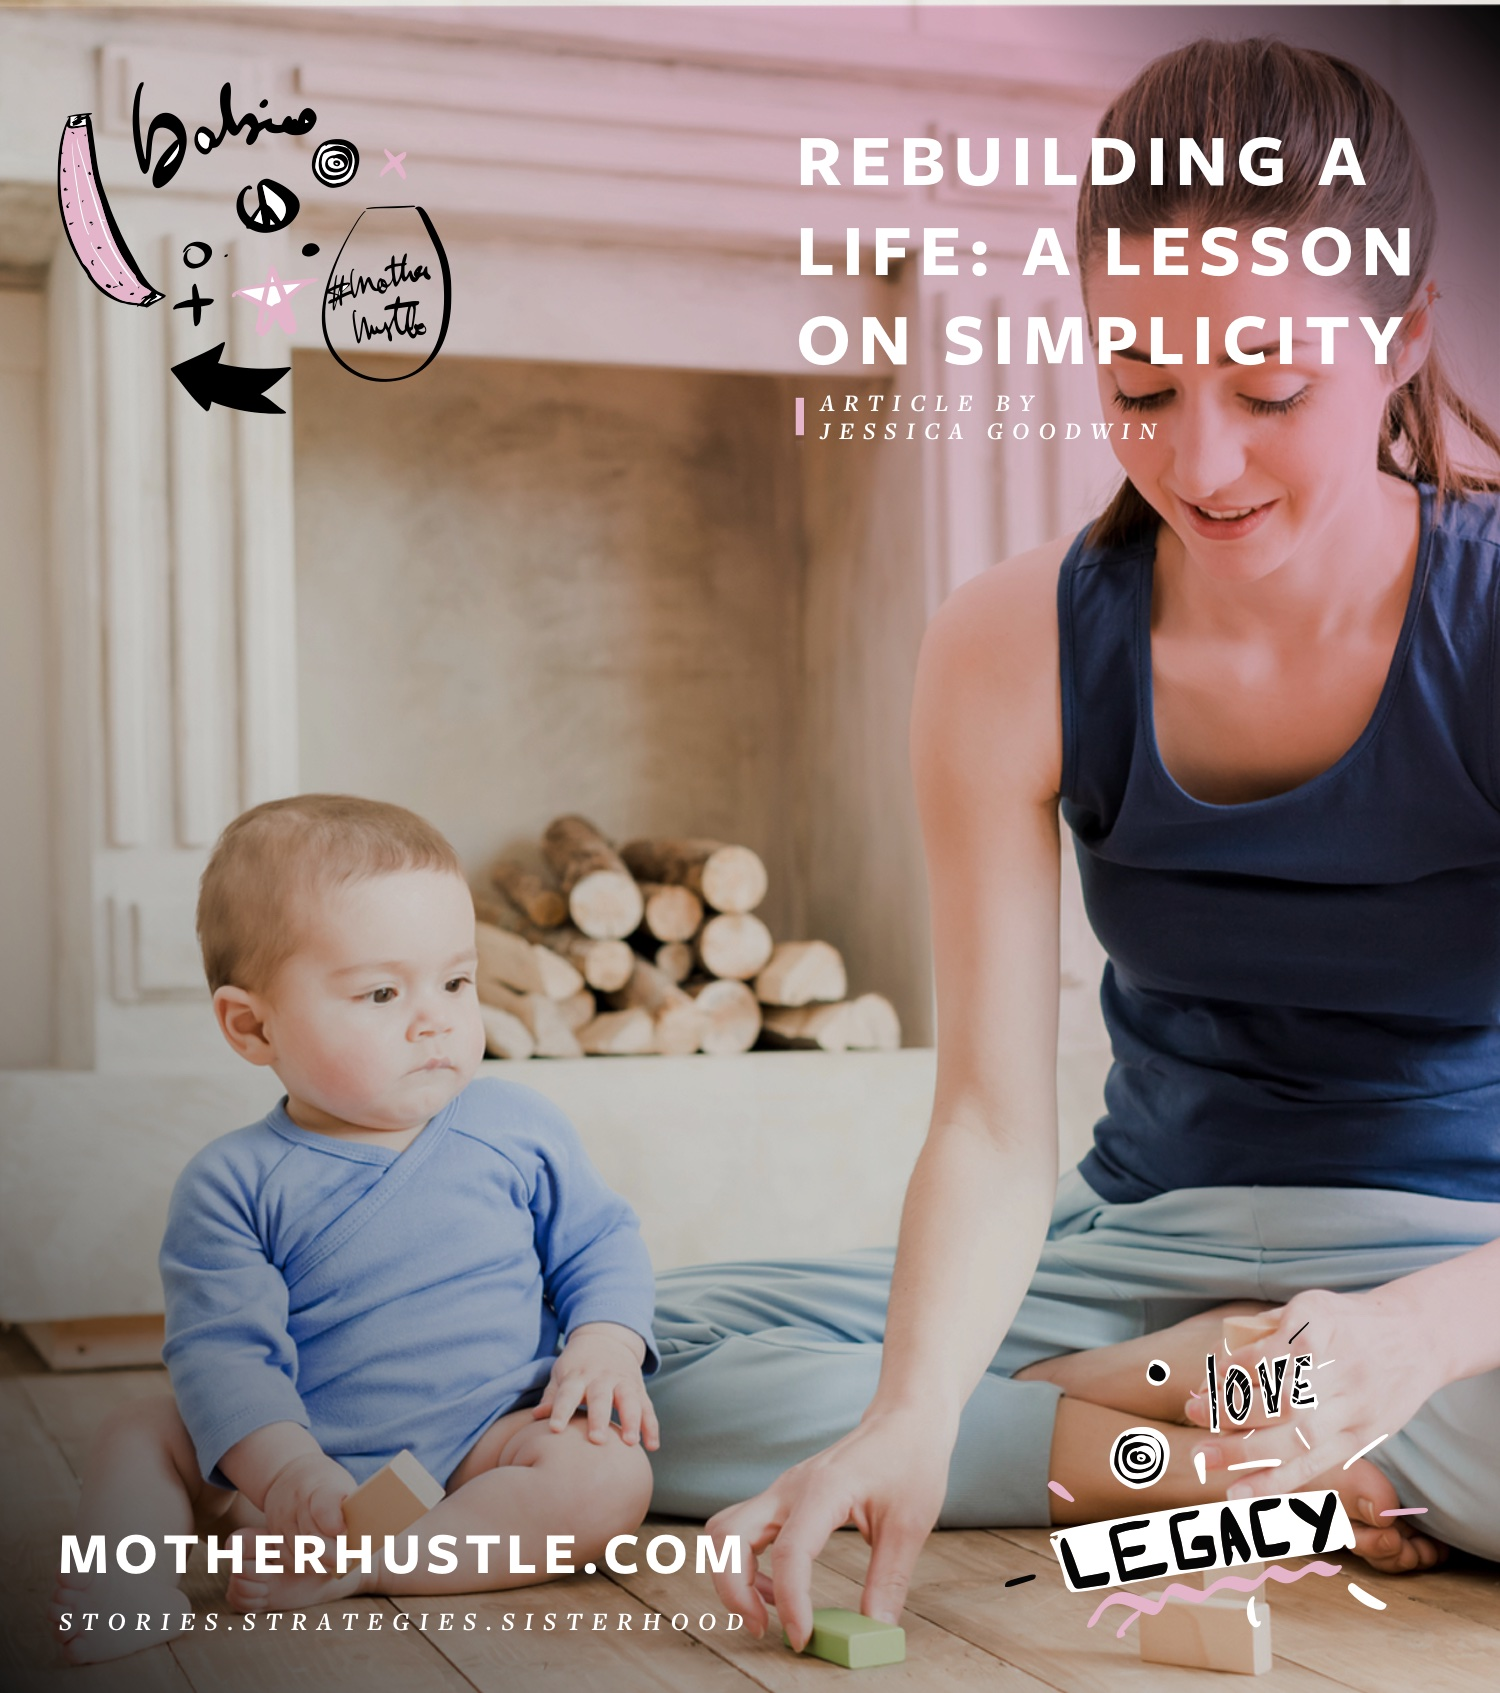 Rebuilding A Life- A Lesson On Simplicity - by Jessica Goodwin MotherHustle